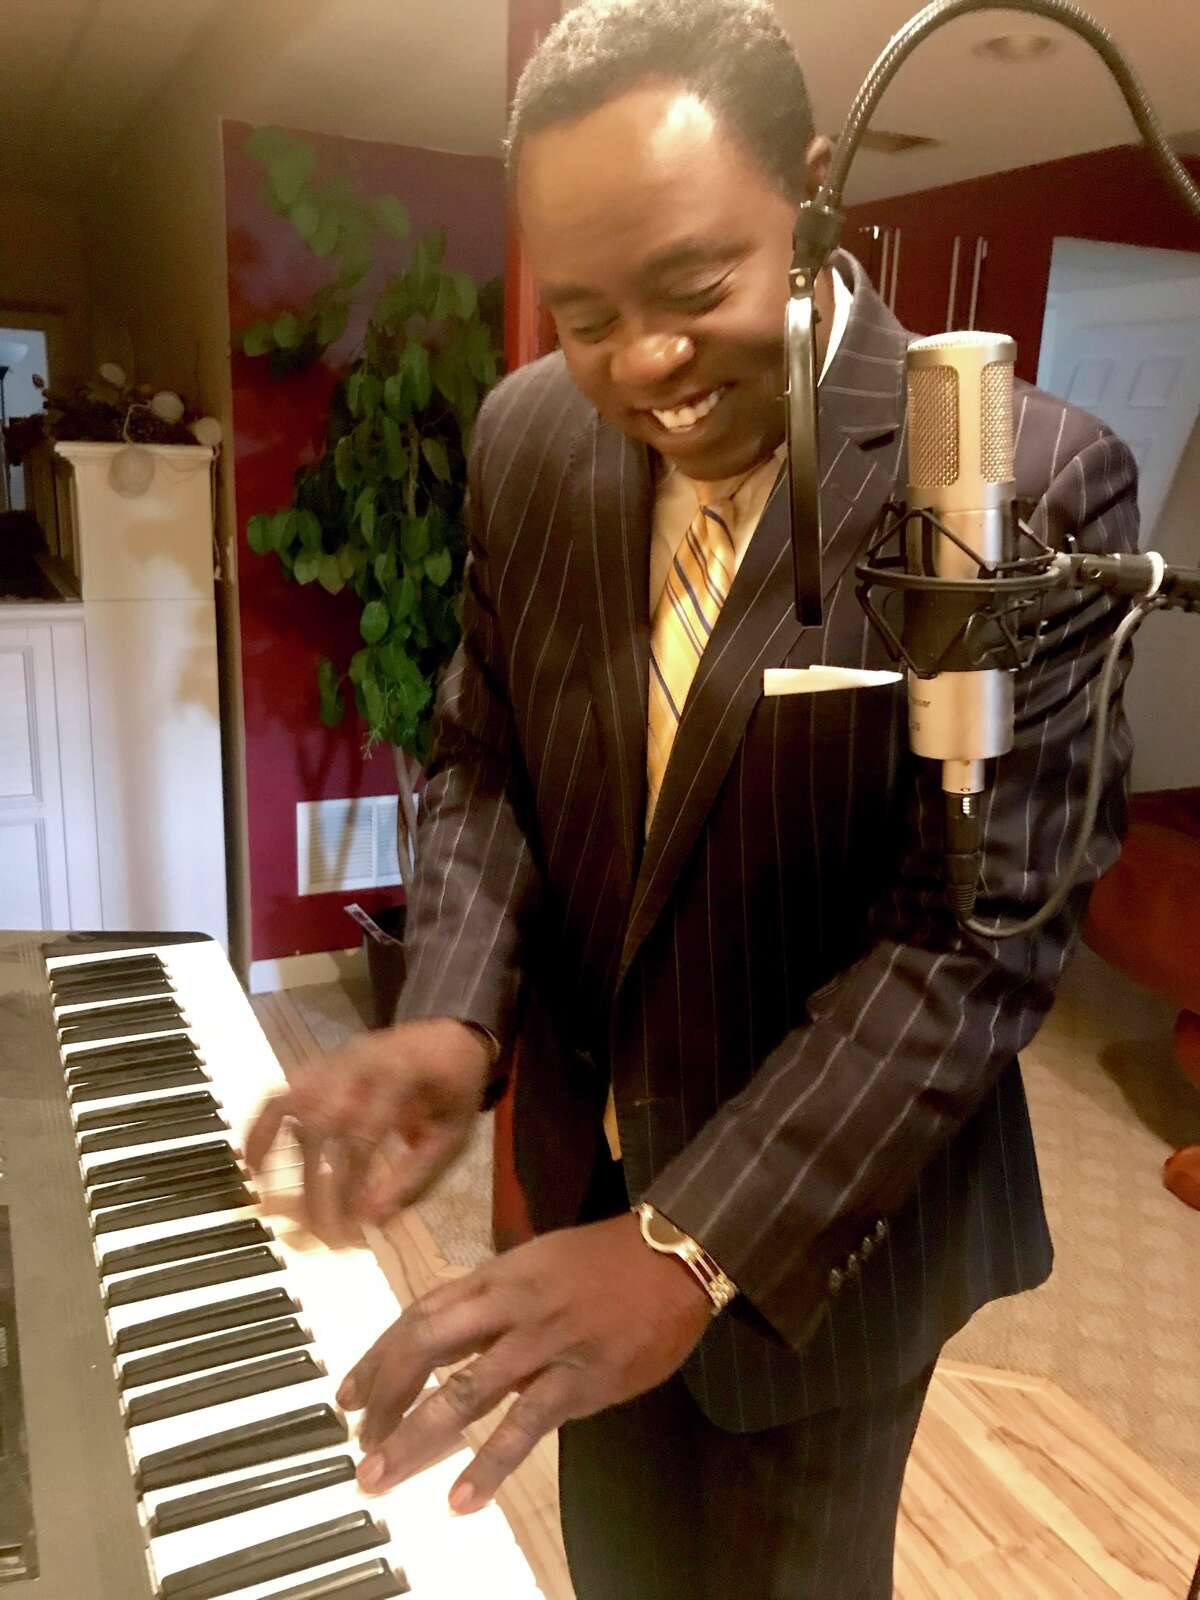 2. When I was in college, I had a recording contract with a record label. I write and produce music. I also play piano.